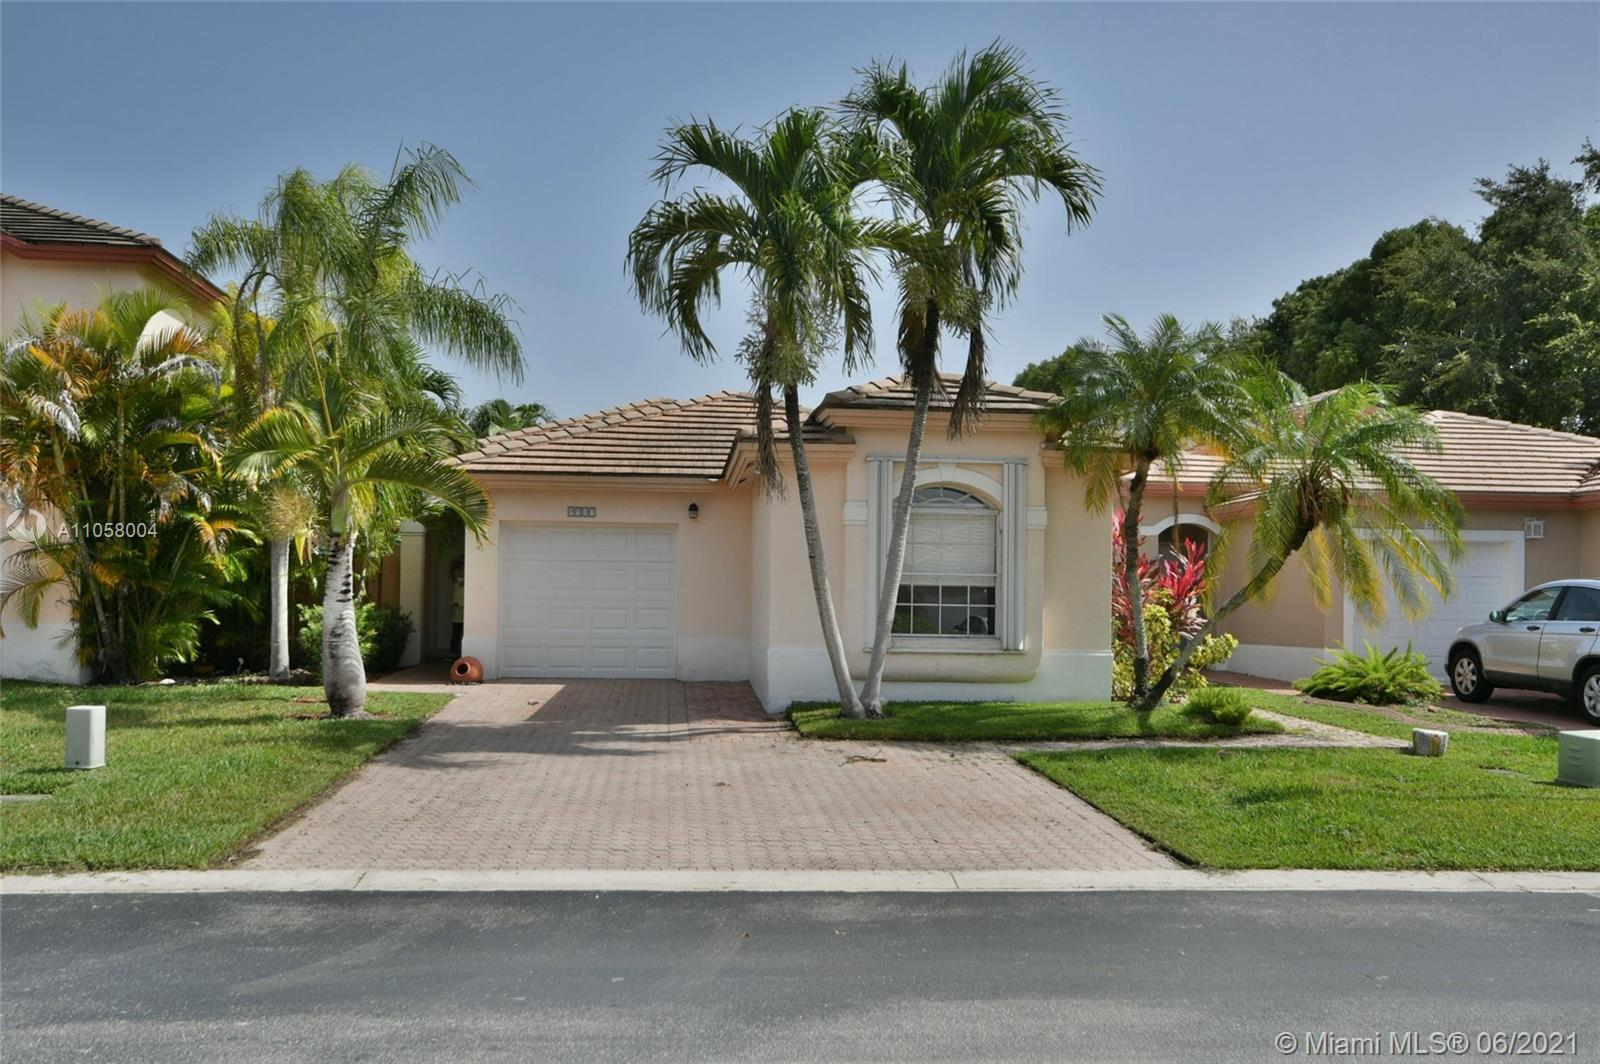 9917 NW 31st St, Doral, Florida 33172